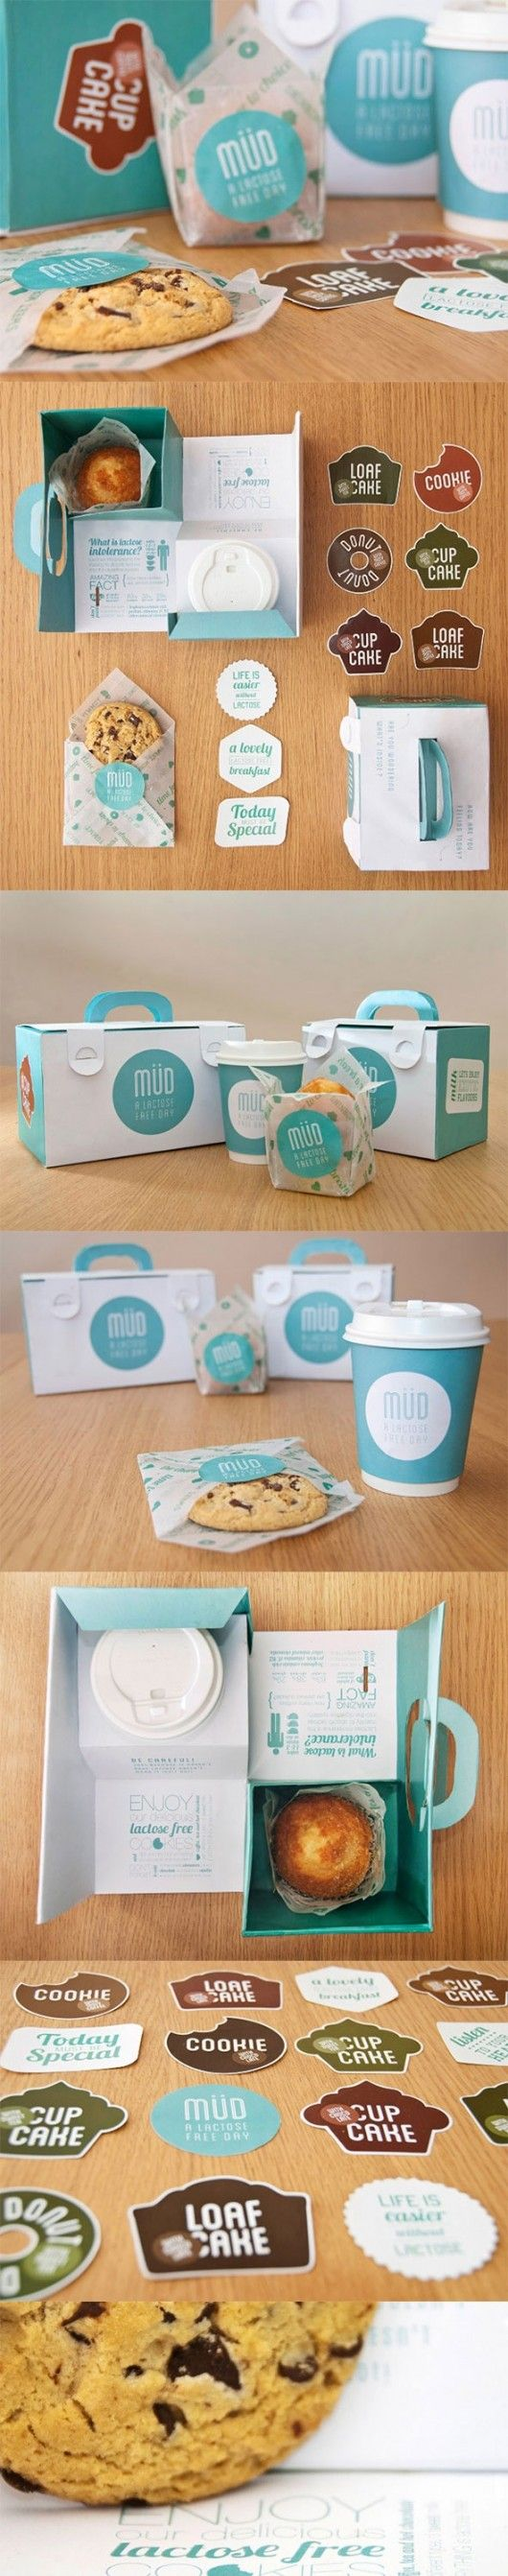 lunch-box-packaging